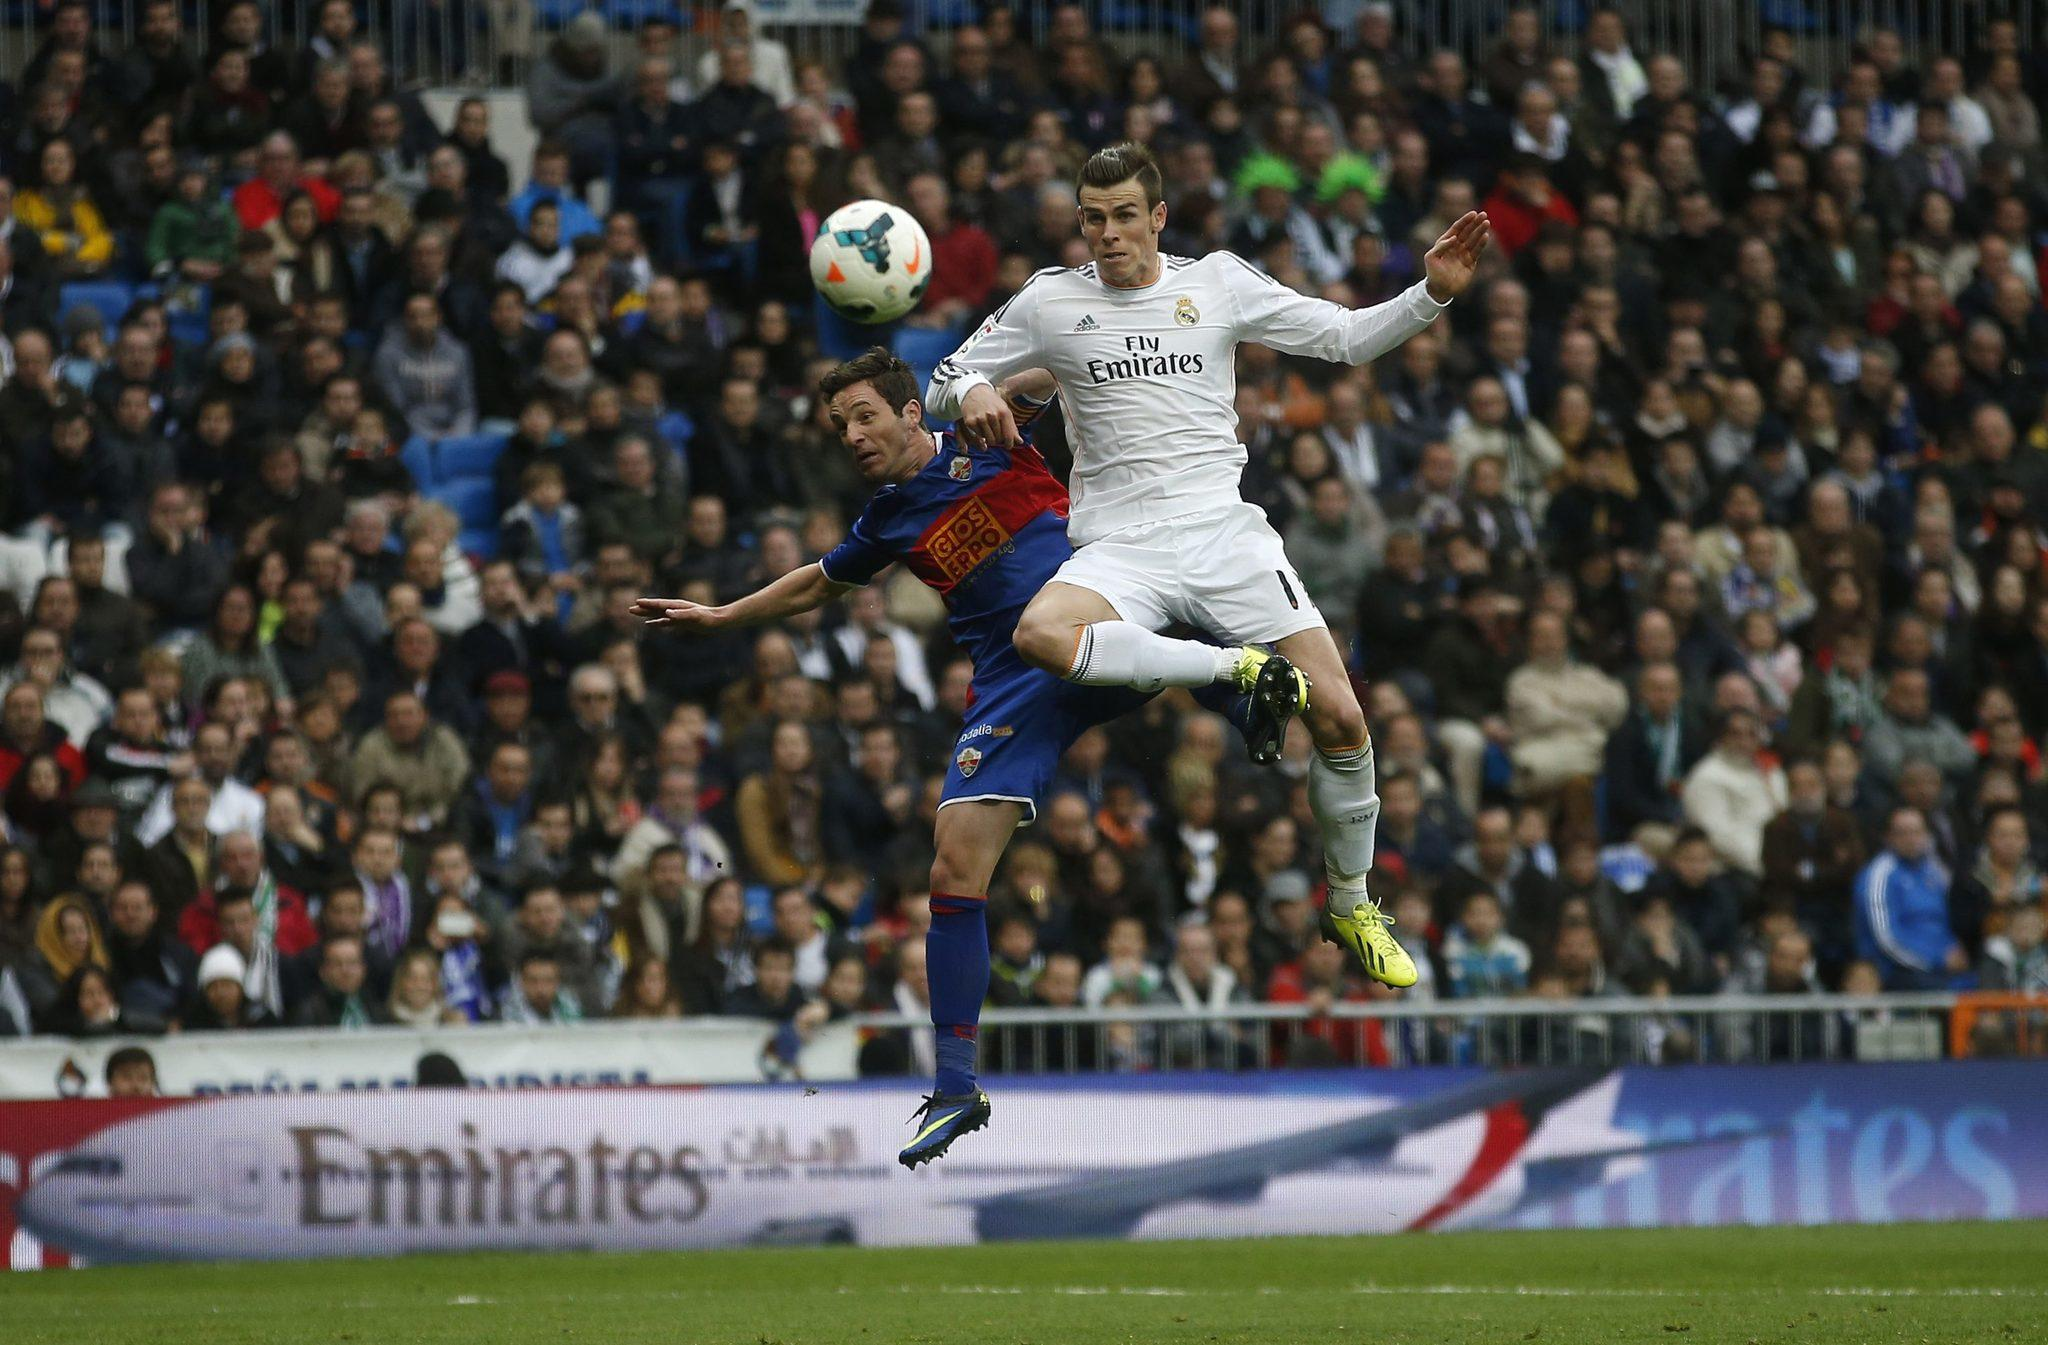 Real Madrid's Gareth Bale jumps with Elche's Edu Albacar (L) during their Spanish first division soccer match against Elche at Santiago Bernabeu stadium in Madrid February 22, 2014.